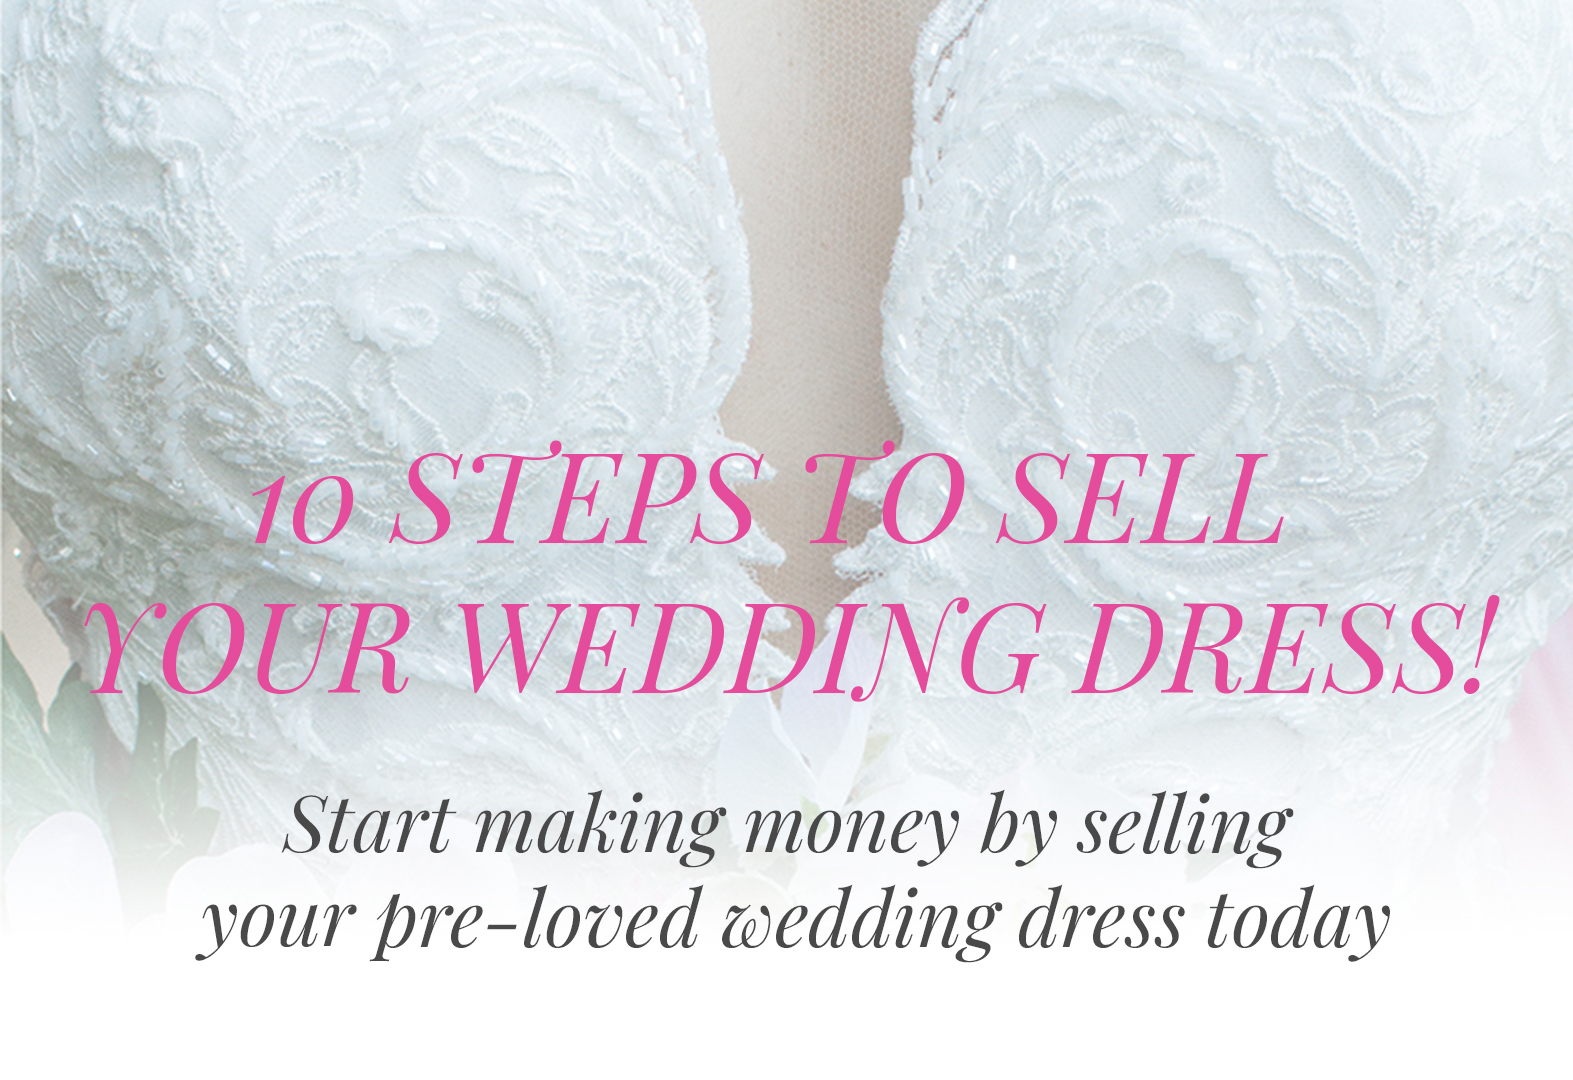 10 Steps to Sell Your Wedding Dress